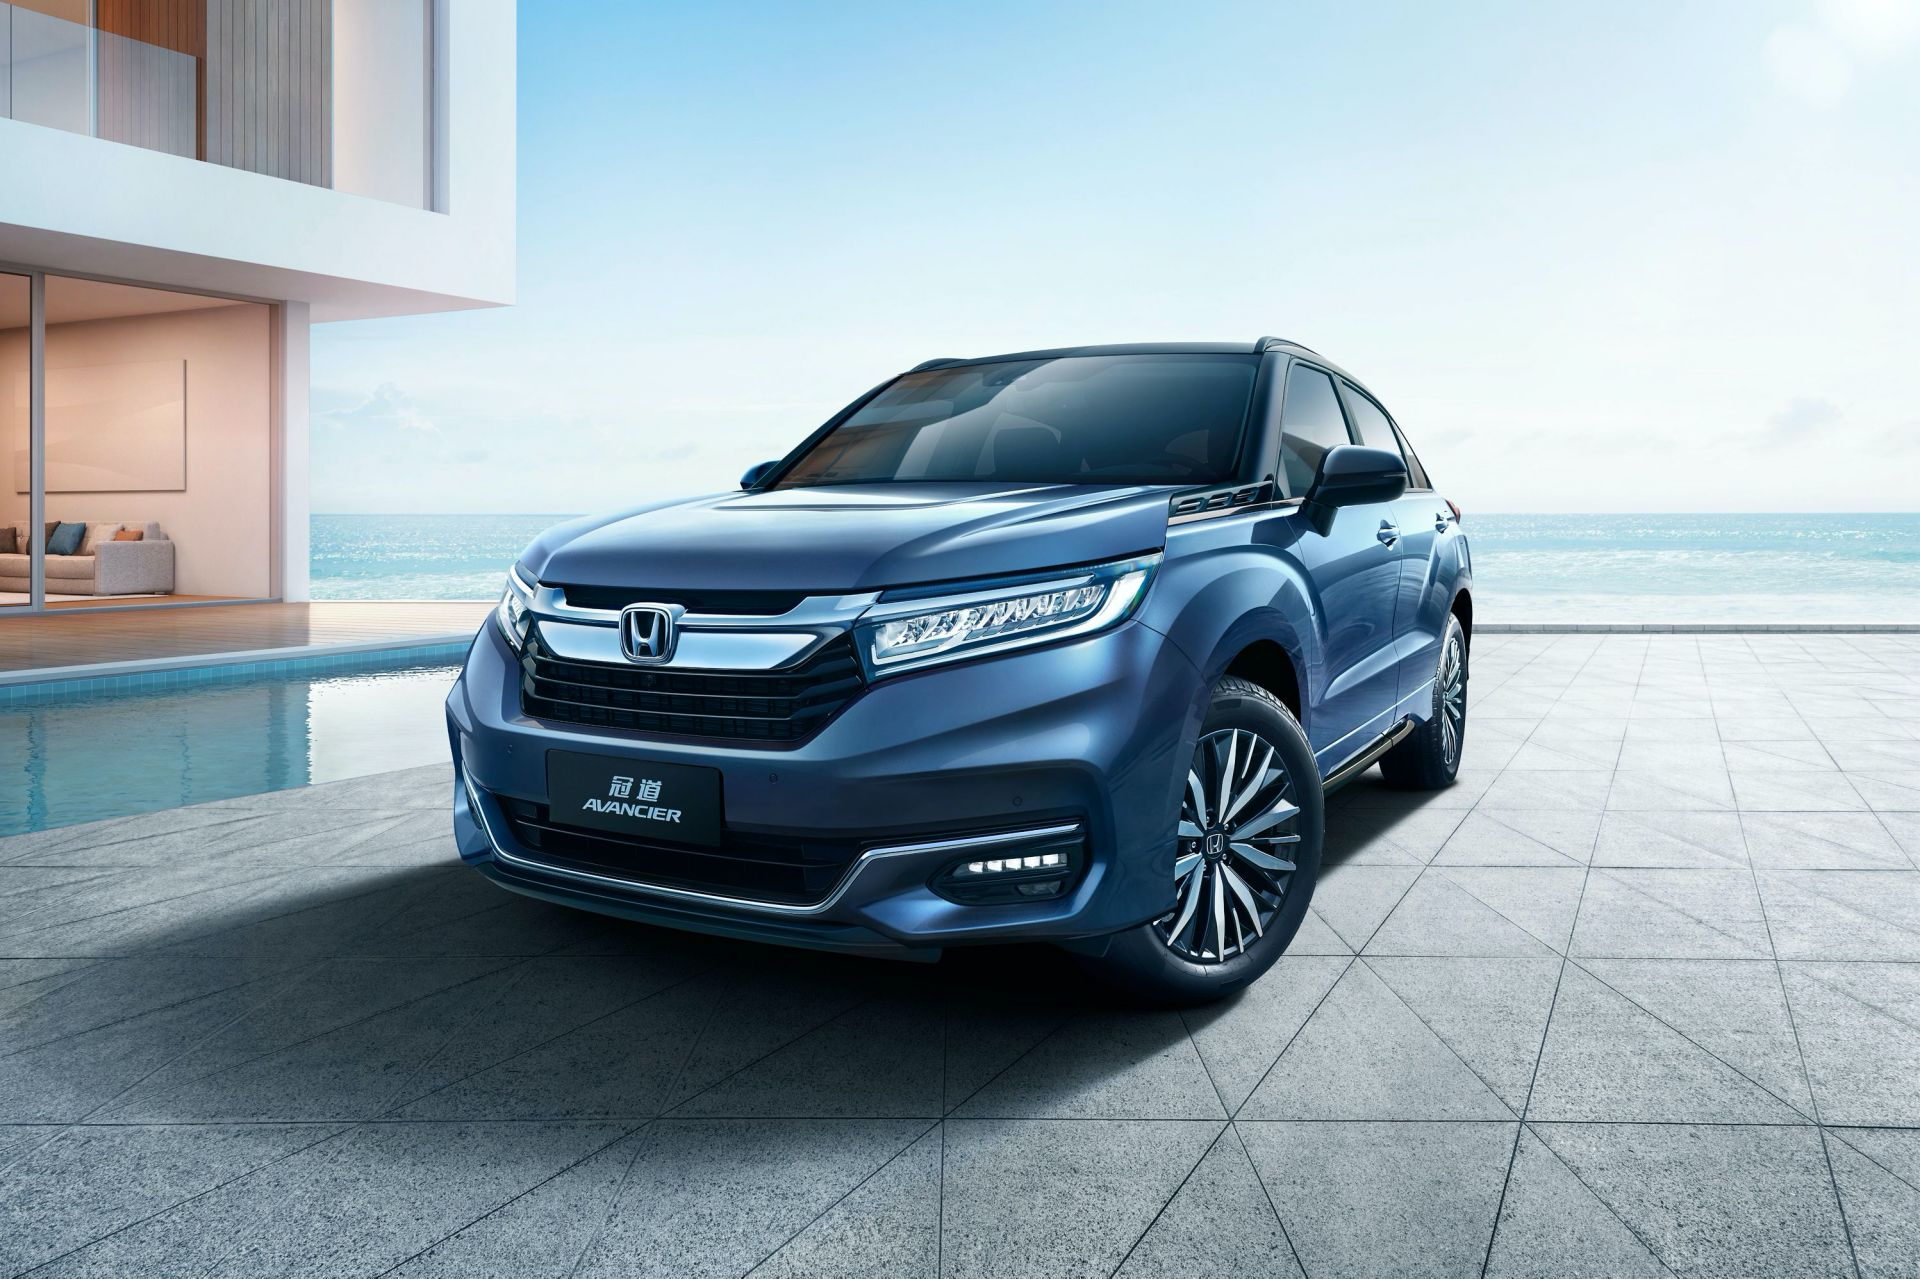 Honda-Avancier-facelift-2020-1